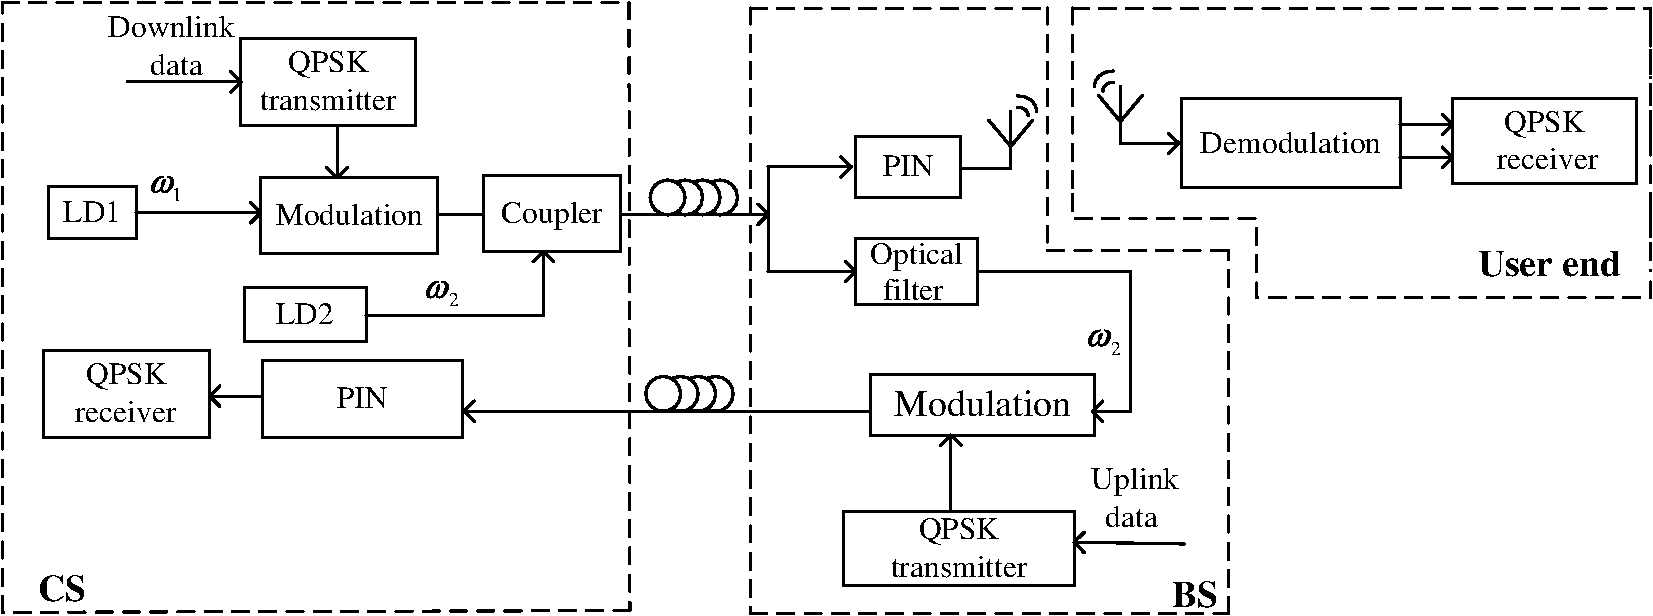 Efficient Phase Switch Quadrature Shift Keying Modulation Radio Control Link And Ask Amplitude The Proposed Architecture Of Over Fiber Qpsk Rof System